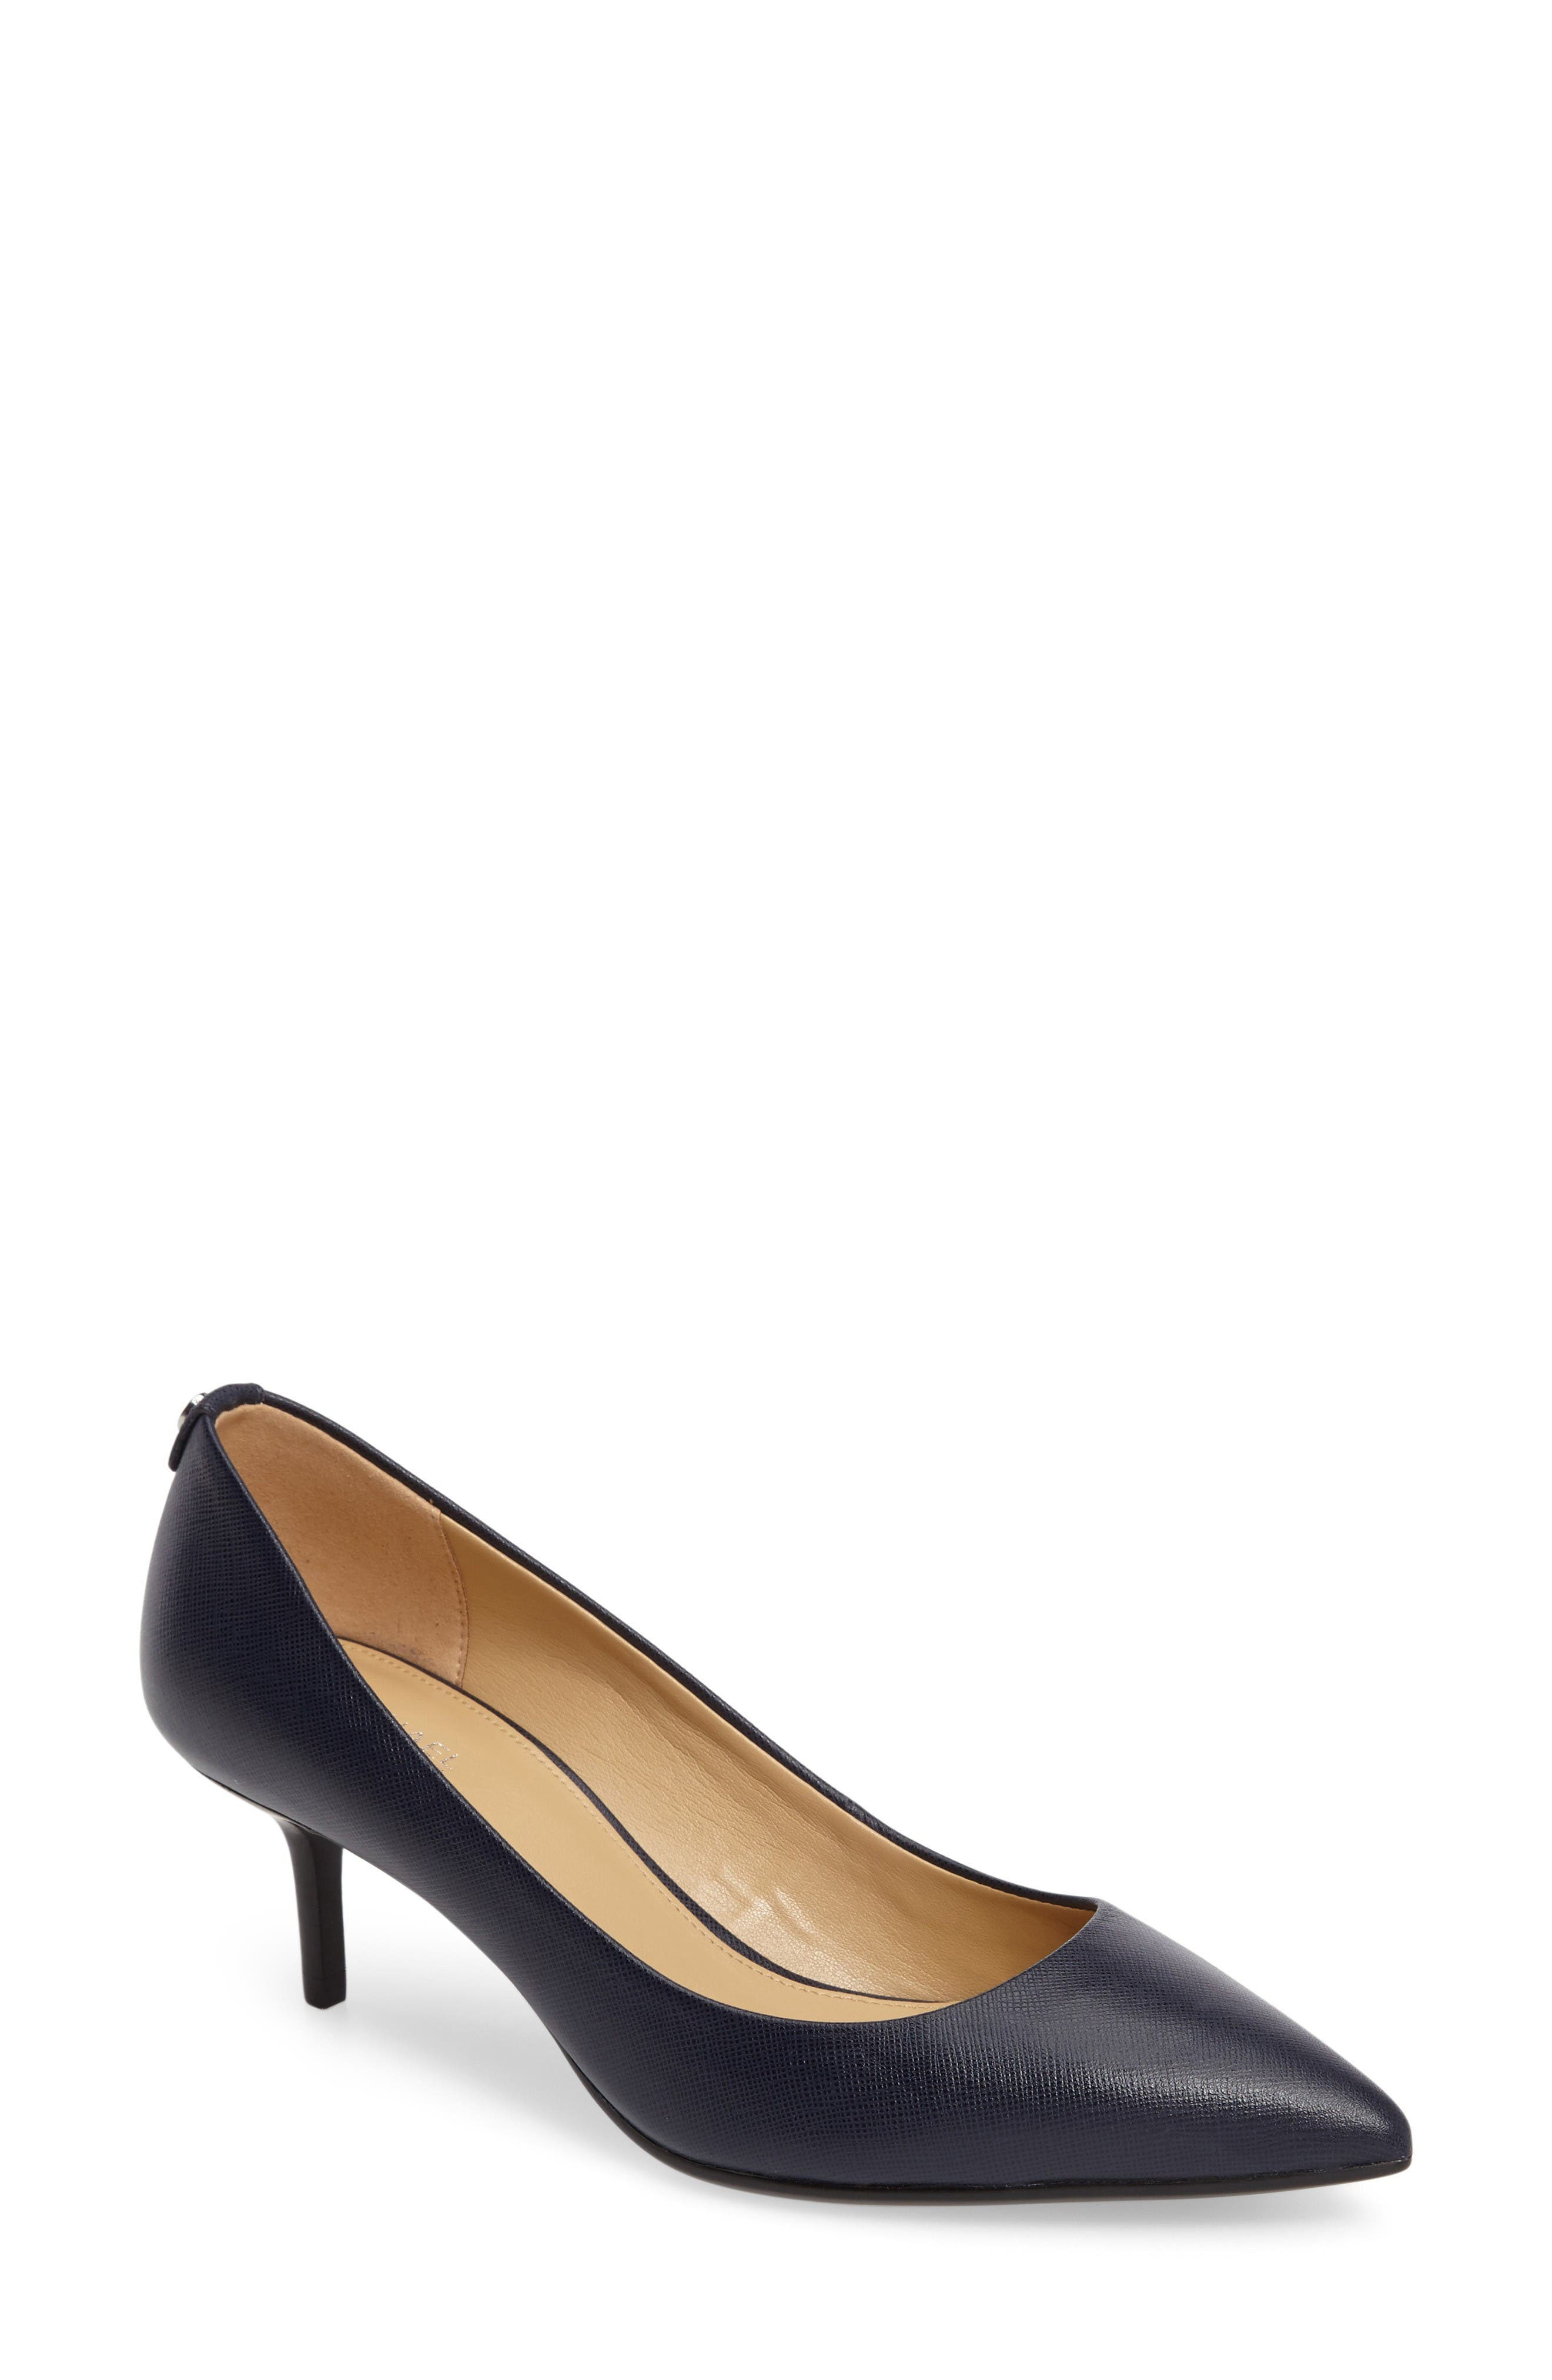 MICHAEL Michael Kors Flex Kitten Pump (Women)